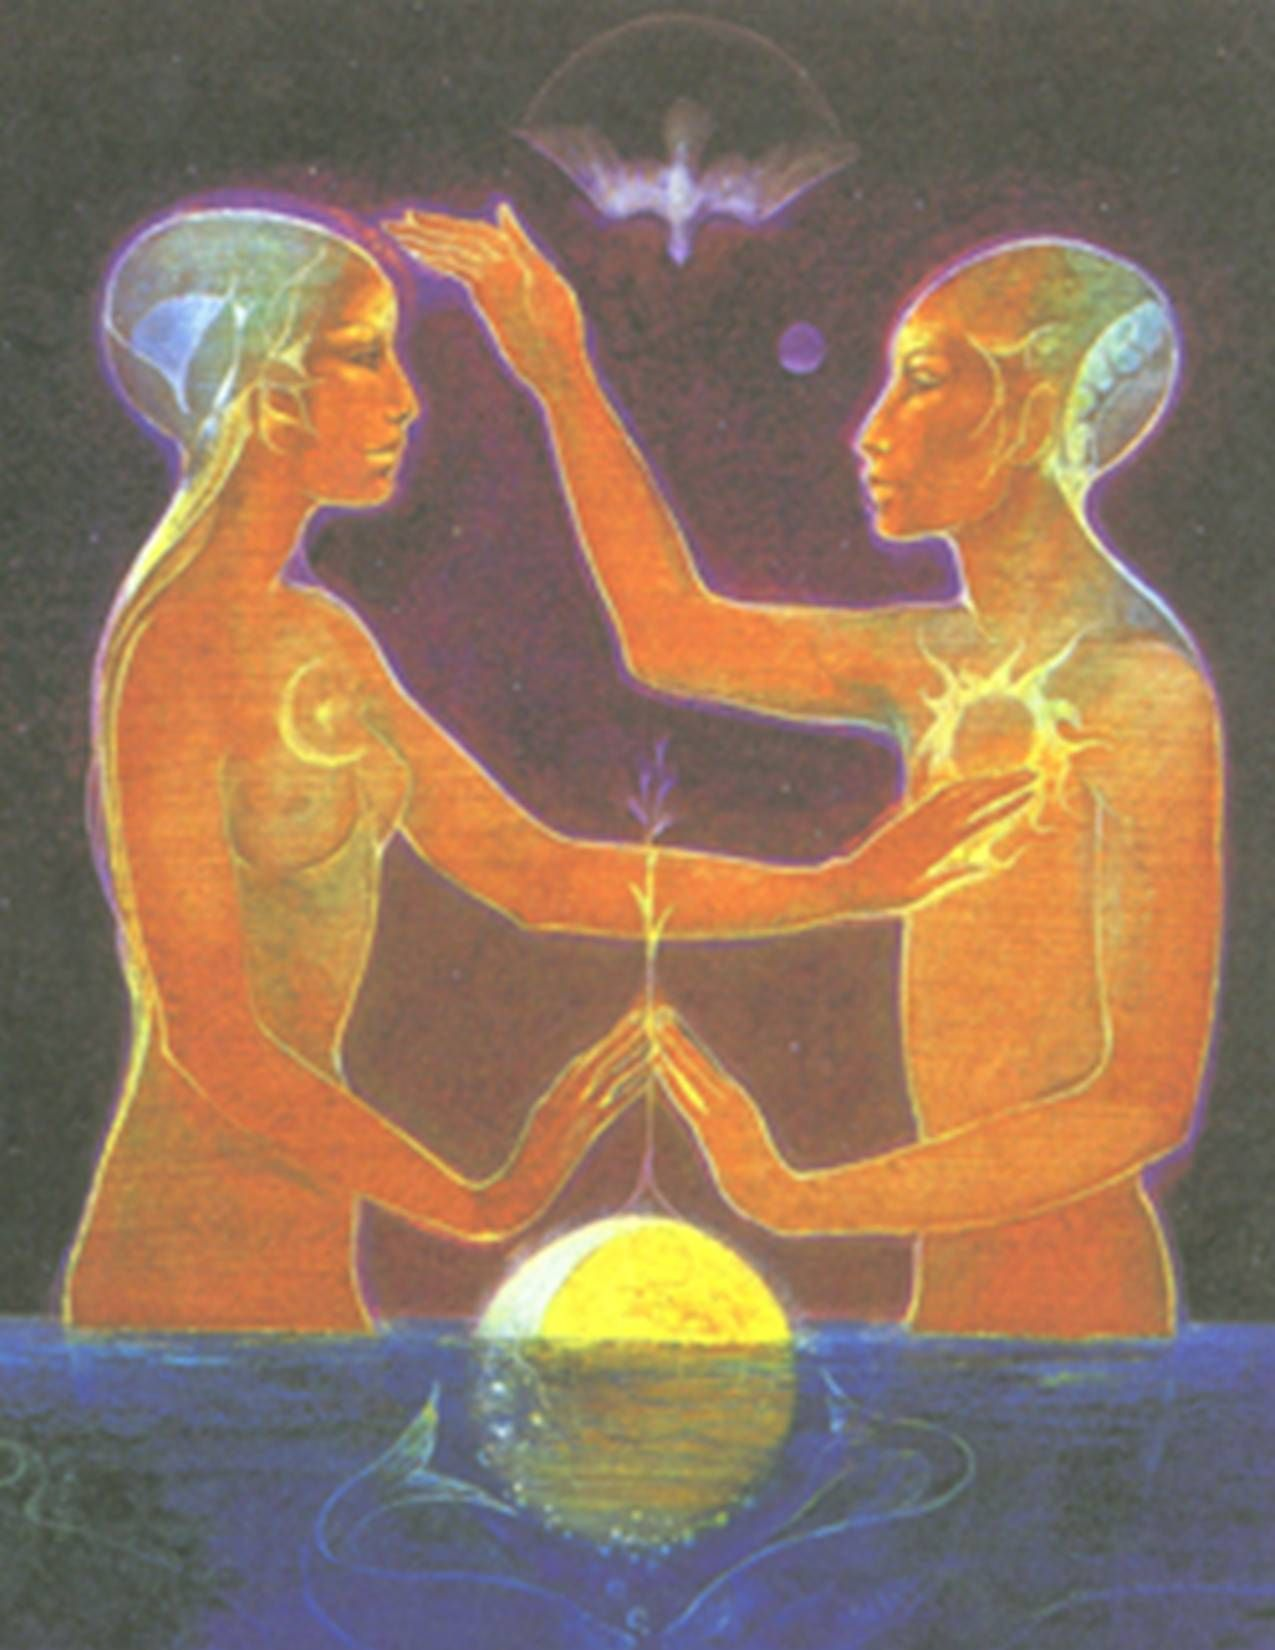 Twin Flames Revealed ~ The True Love Story | Rising Up The